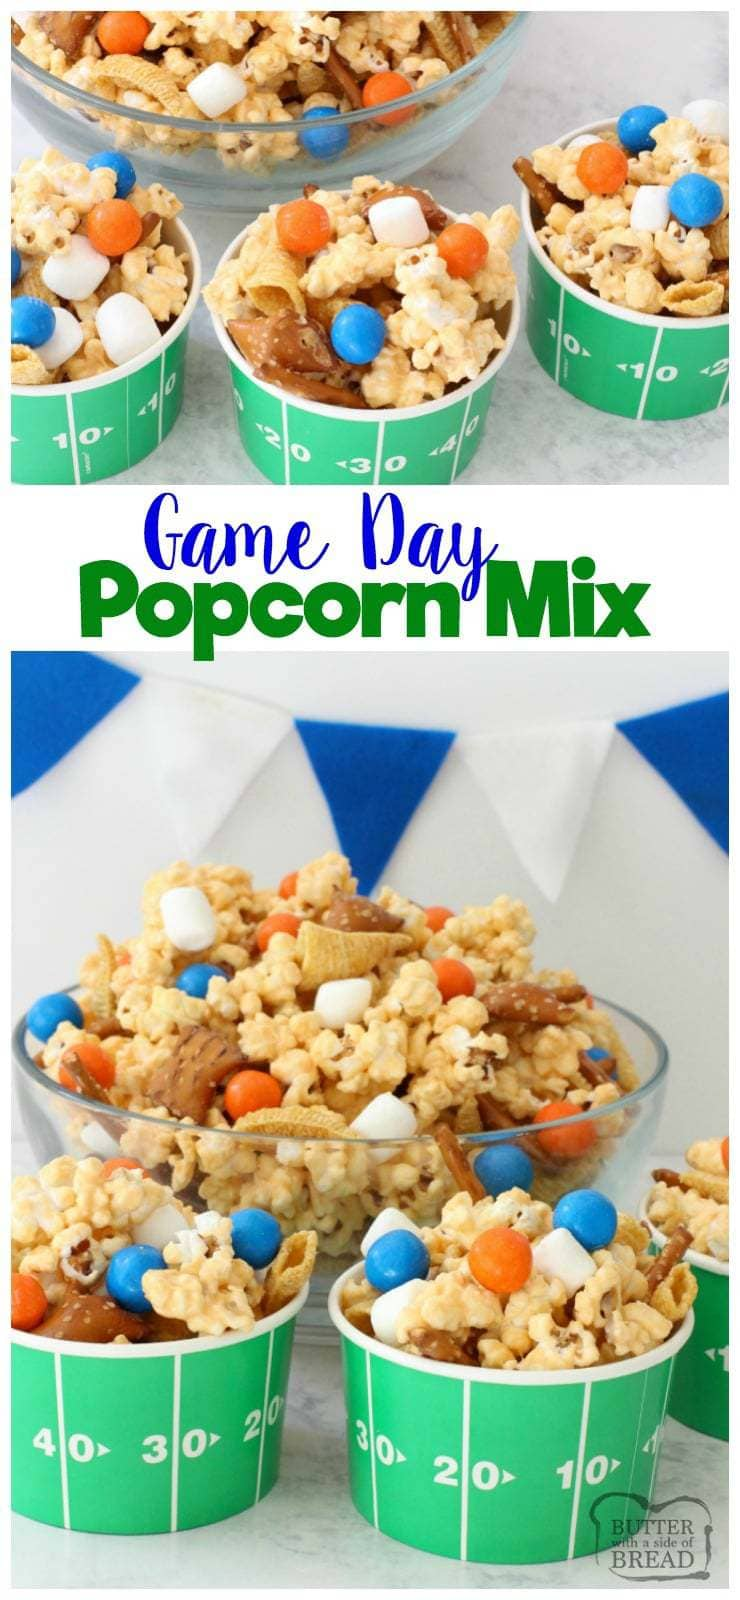 Easy Popcorn Snack Mix is sweet, salty, & perfect for excited sports fans! Customize candy colors to celebrate your team in this snack mix recipe!